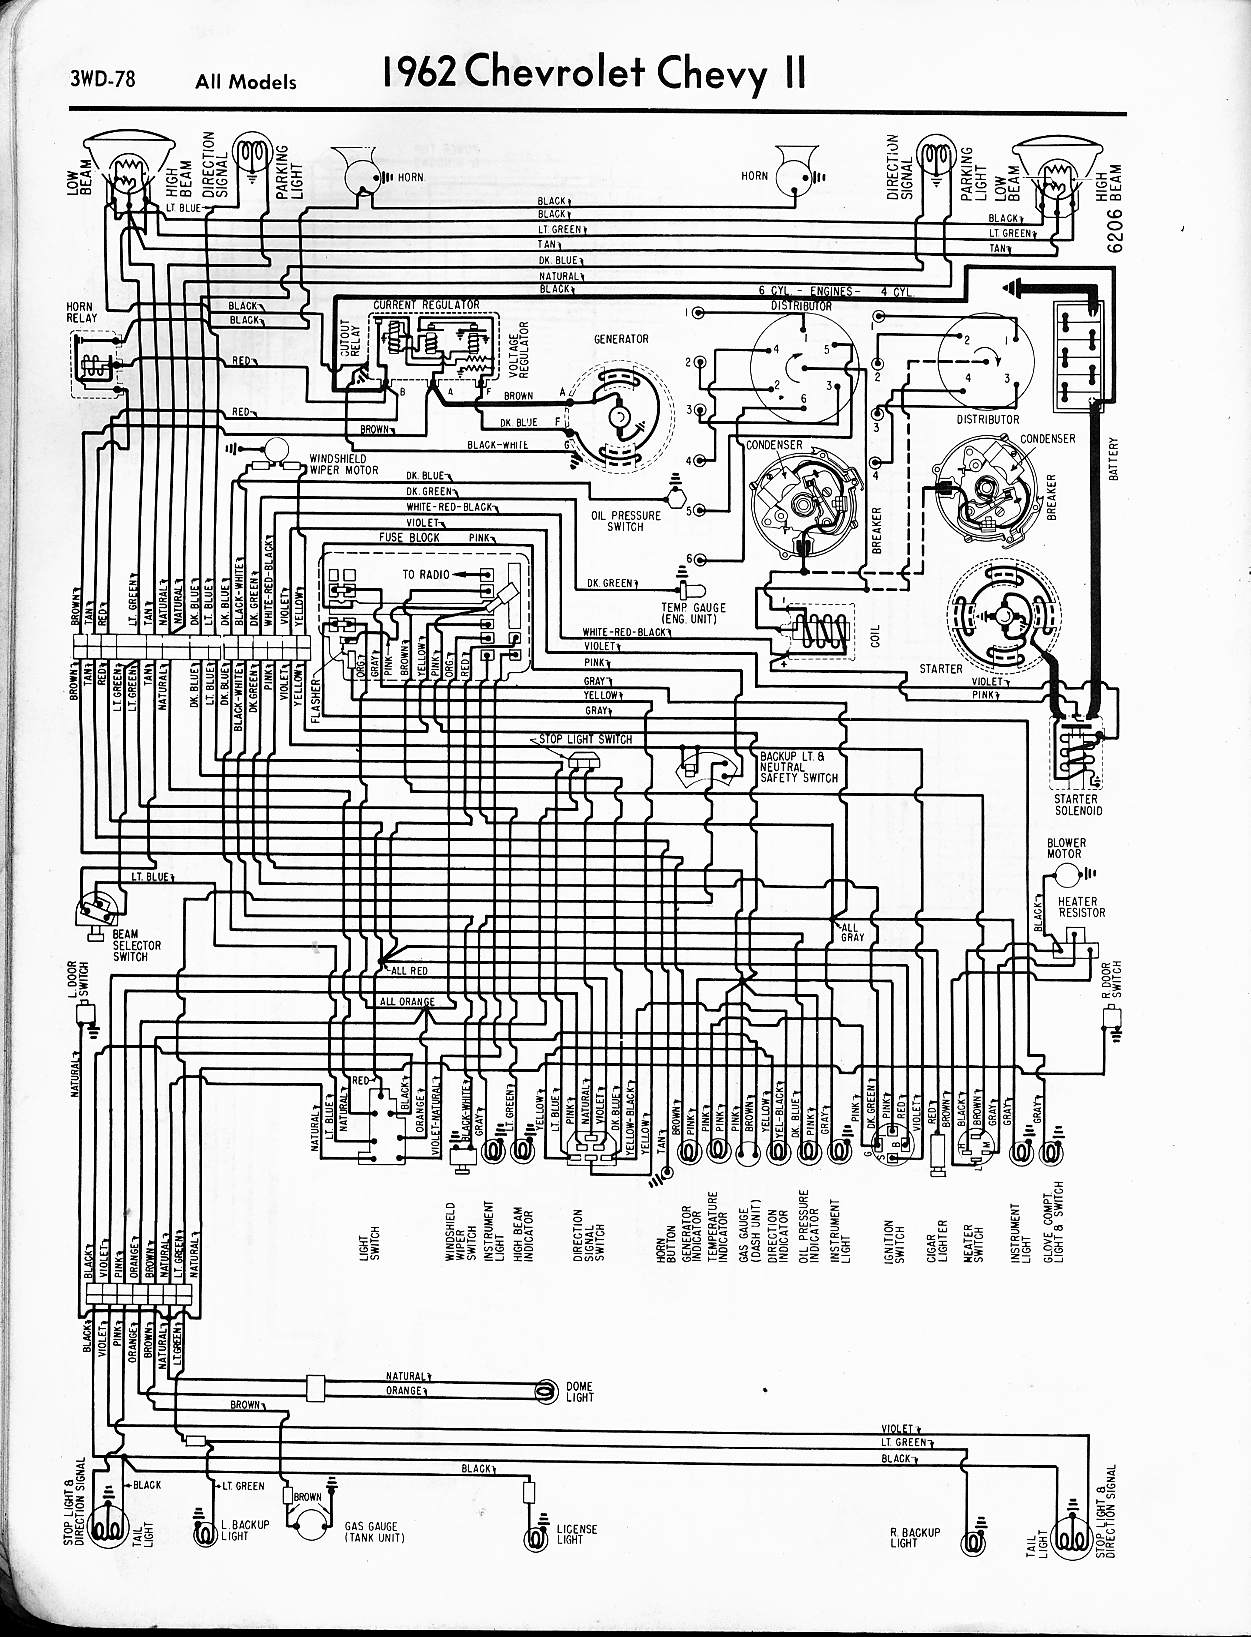 MWireChev62_3WD 078 1963 c10 pickup wiring diagram pdf chevy wiring diagrams \u2022 free 67 Chevy 2 Nova at crackthecode.co